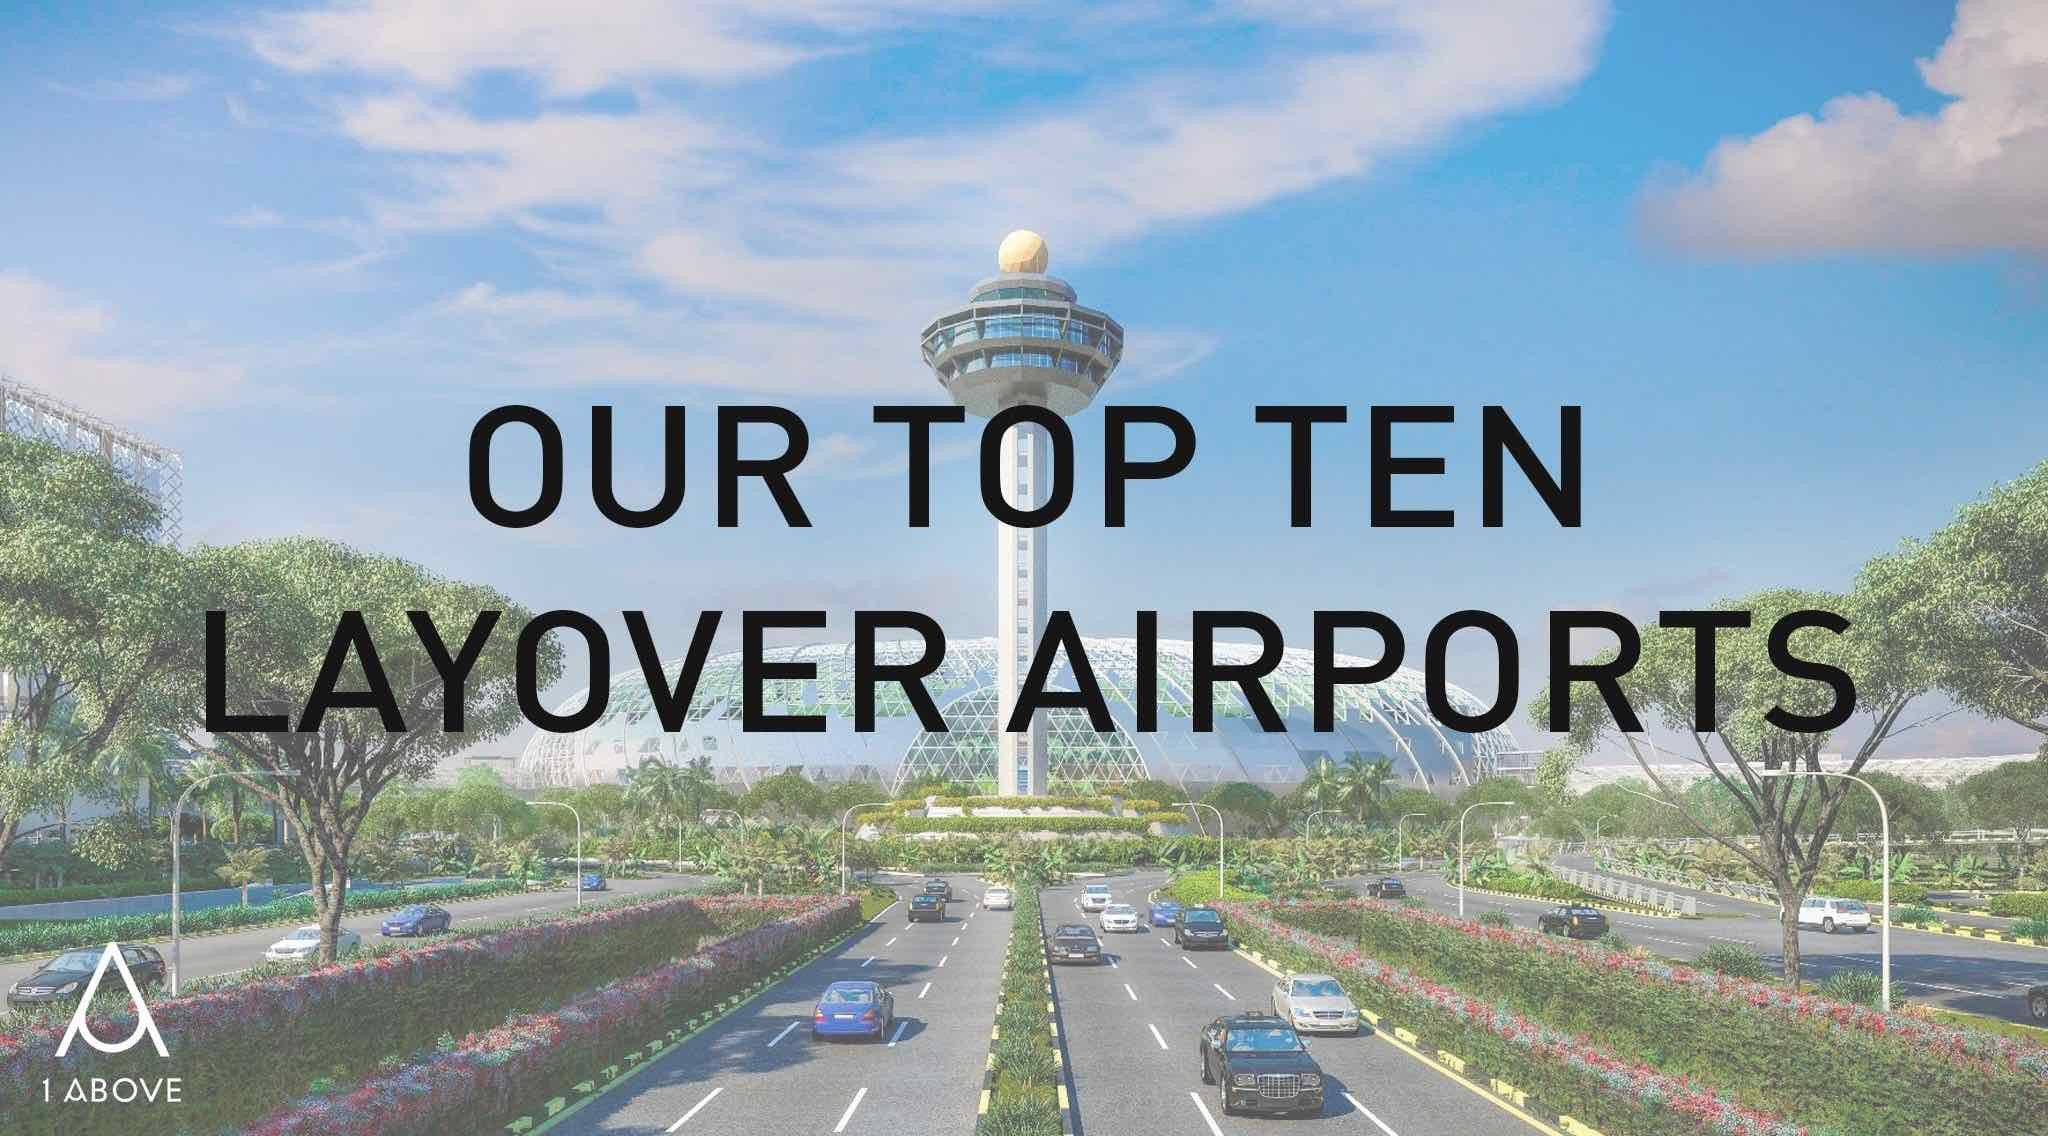 Our Top Ten Layover Airports